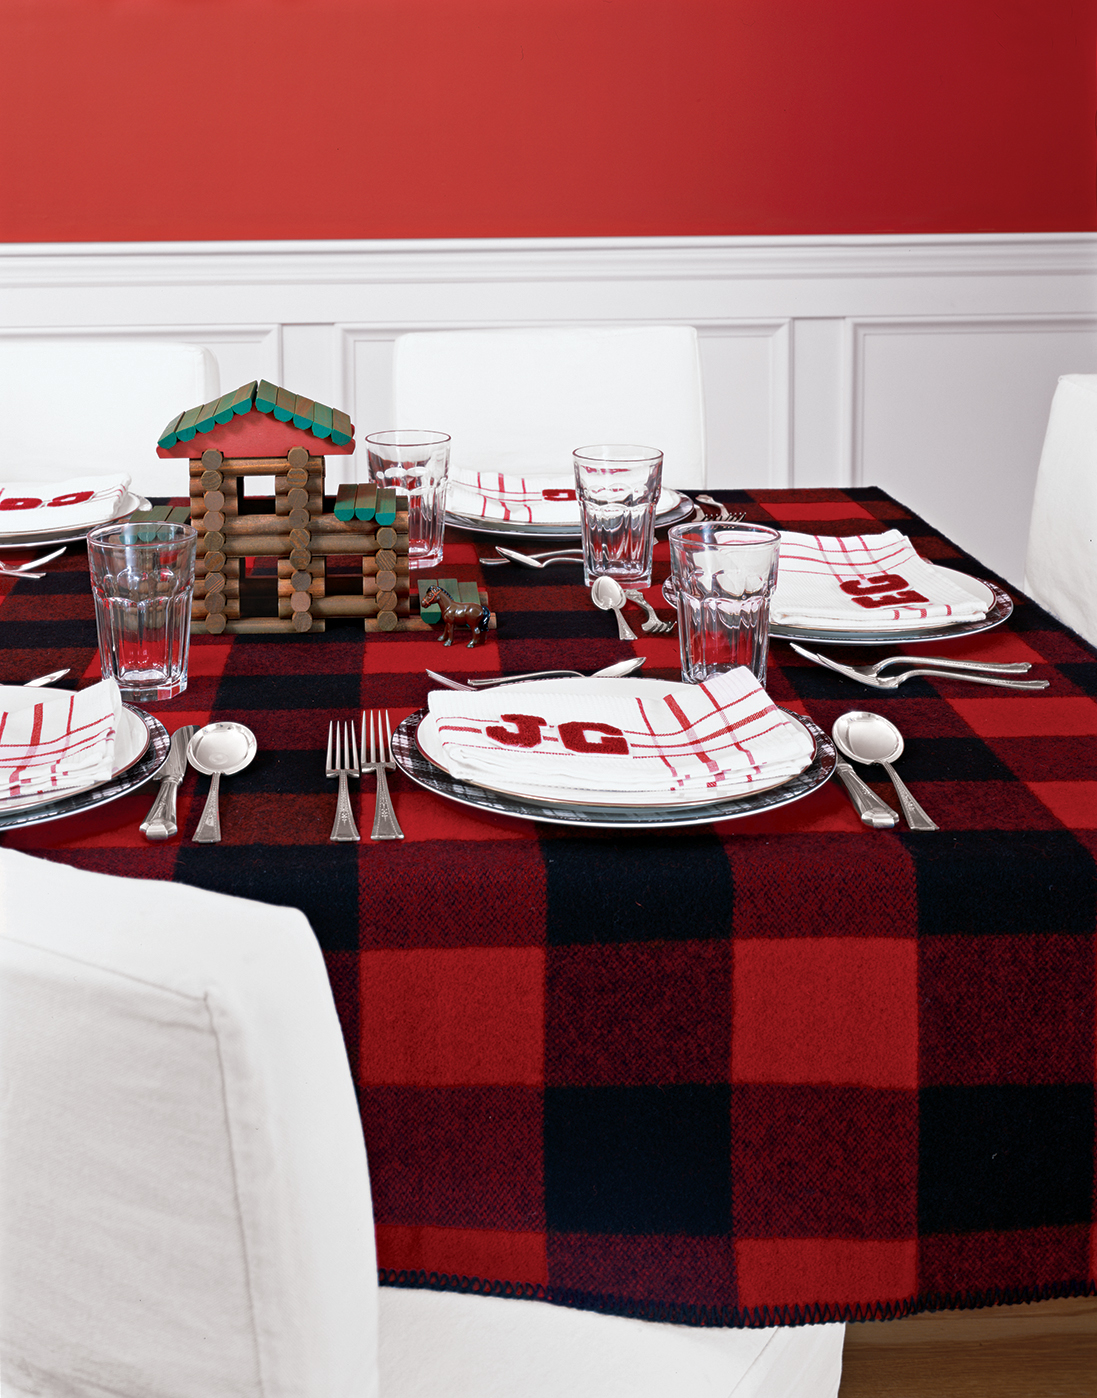 Plaid throw blanket used as a tablecloth